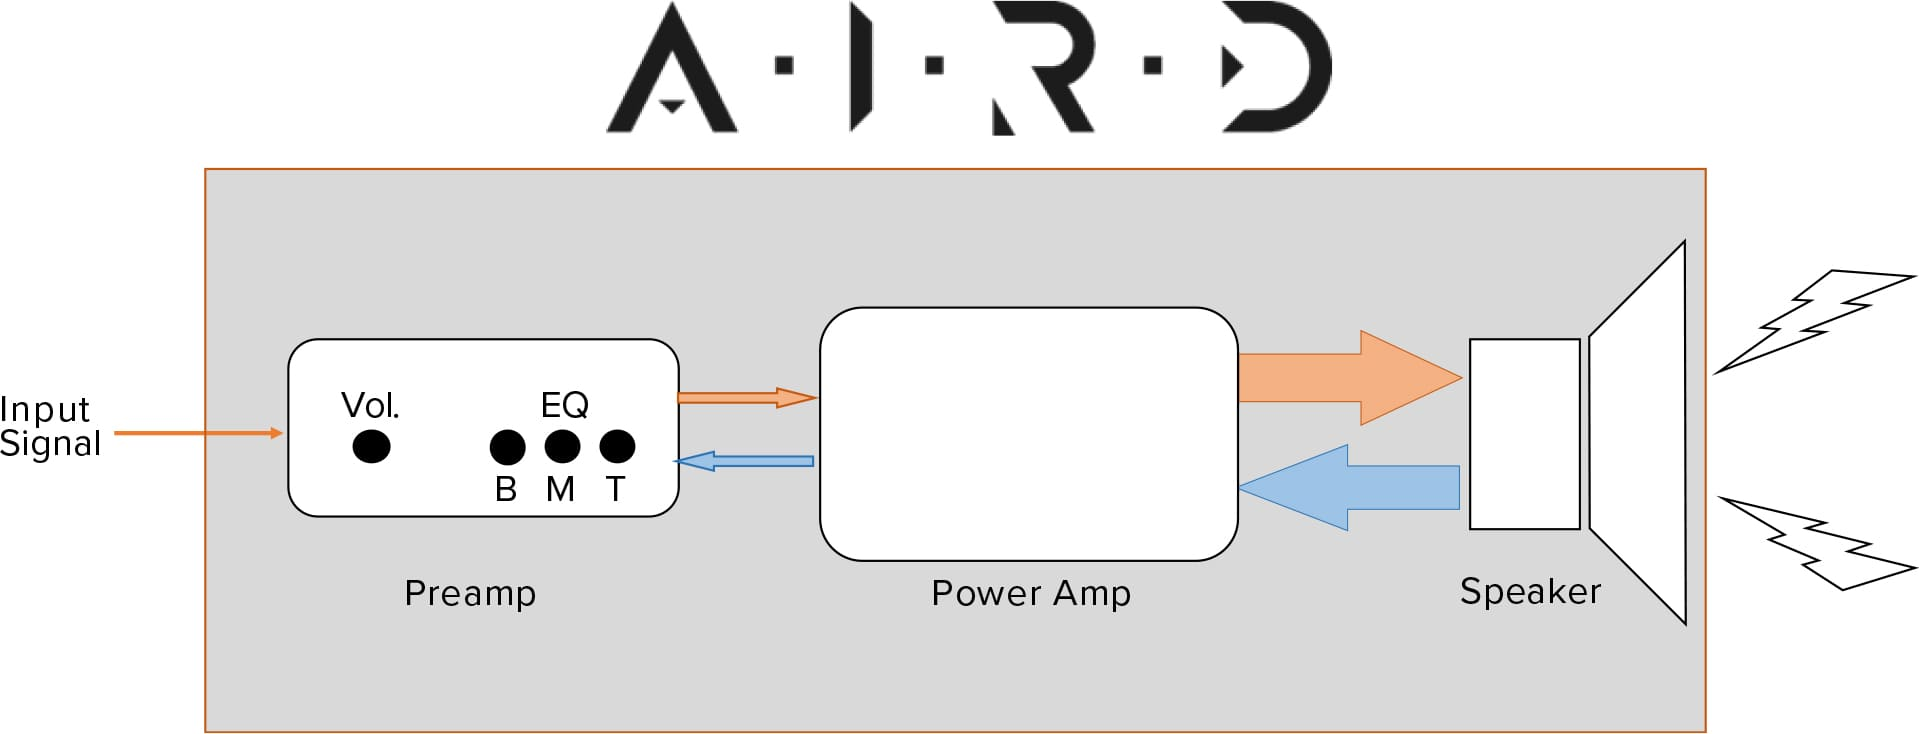 hight resolution of the new aird technology considers the amp and speaker as a complete system in order to capture the electrical interaction between the amp and the speaker in